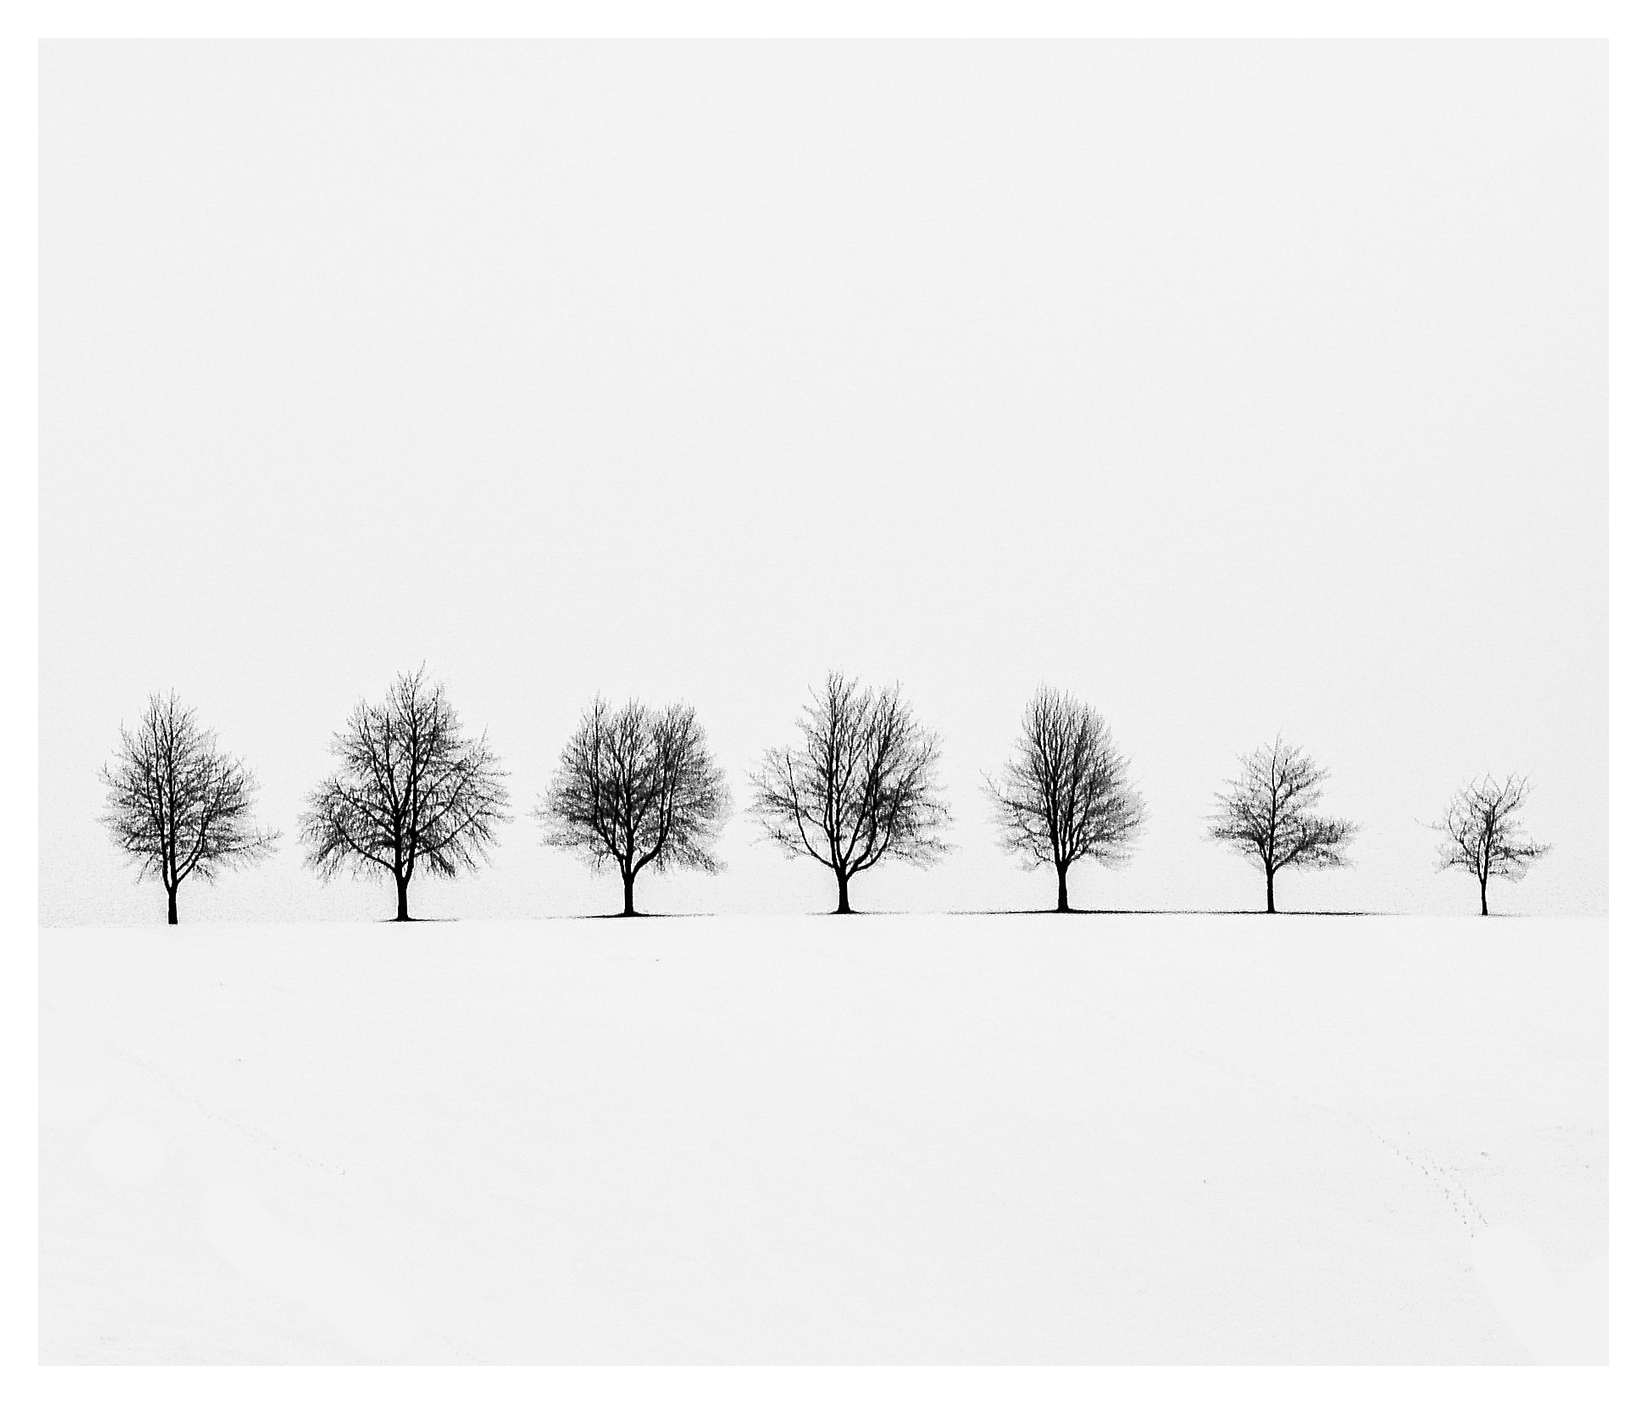 Trees in a snowstorm - image shot in the Black Forest in Germany in 2014 during near white-out conditions.